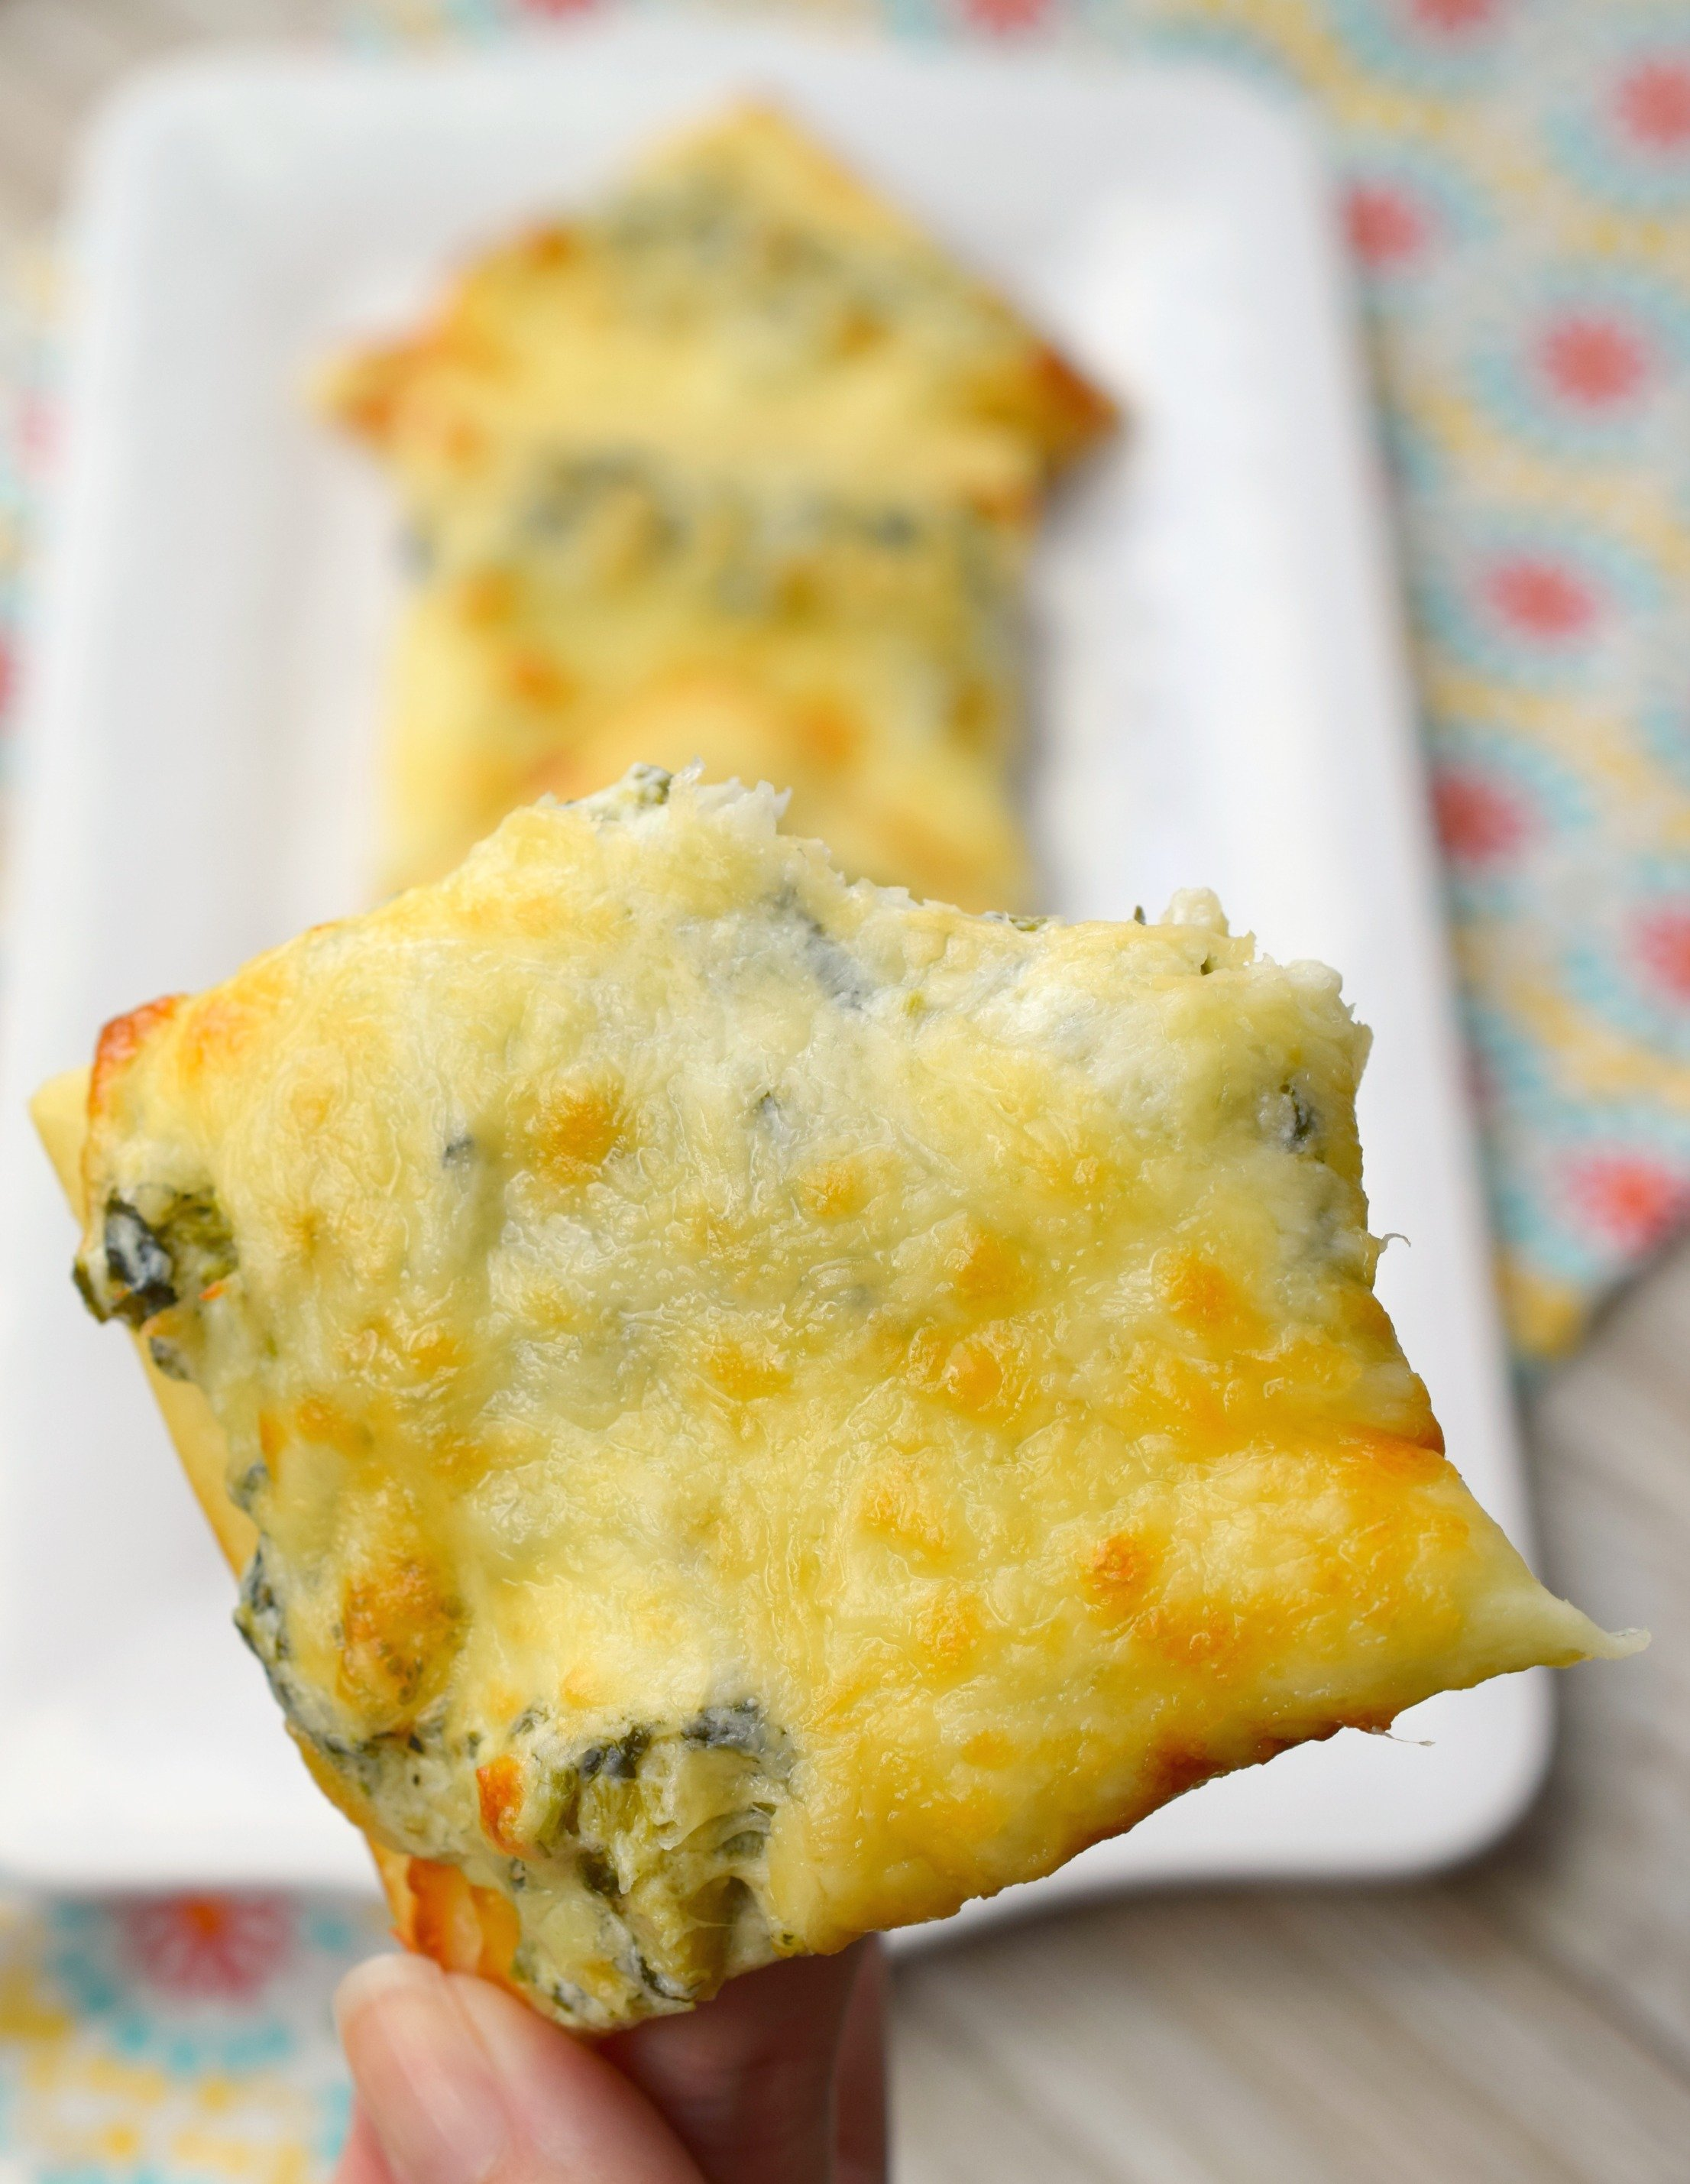 Creamy Spinach and Artichoke Pizza is a definite family favorite in our house. A simple dinner or party food, this is one deliciously cheesy meal.